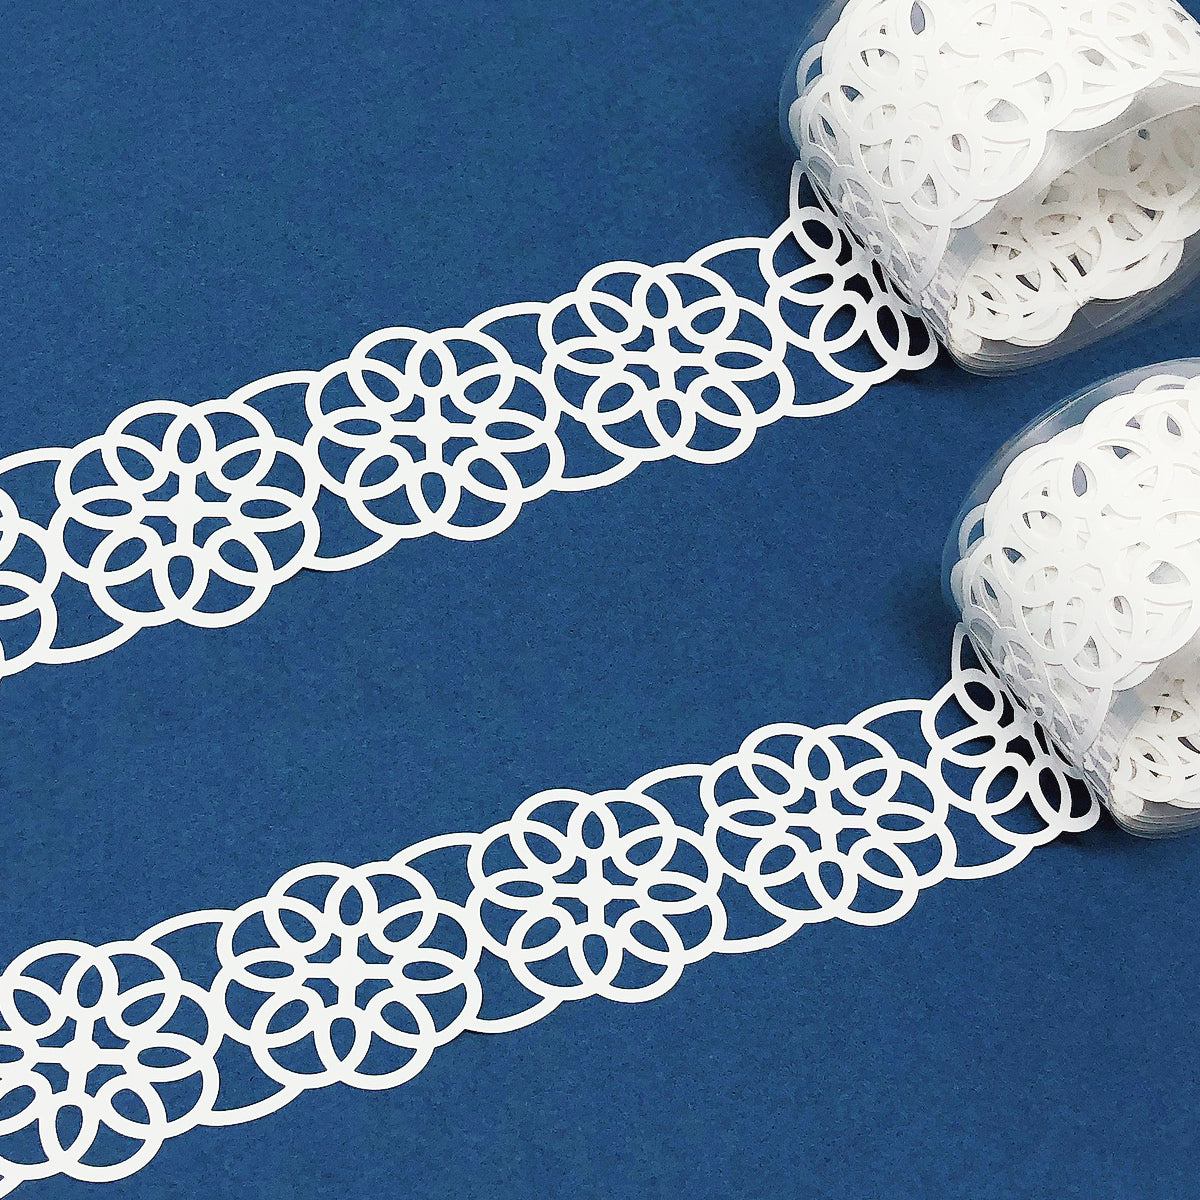 Wrapables Hollow Lace Pattern Washi Masking Tape 2M Length Total (Set of 2)